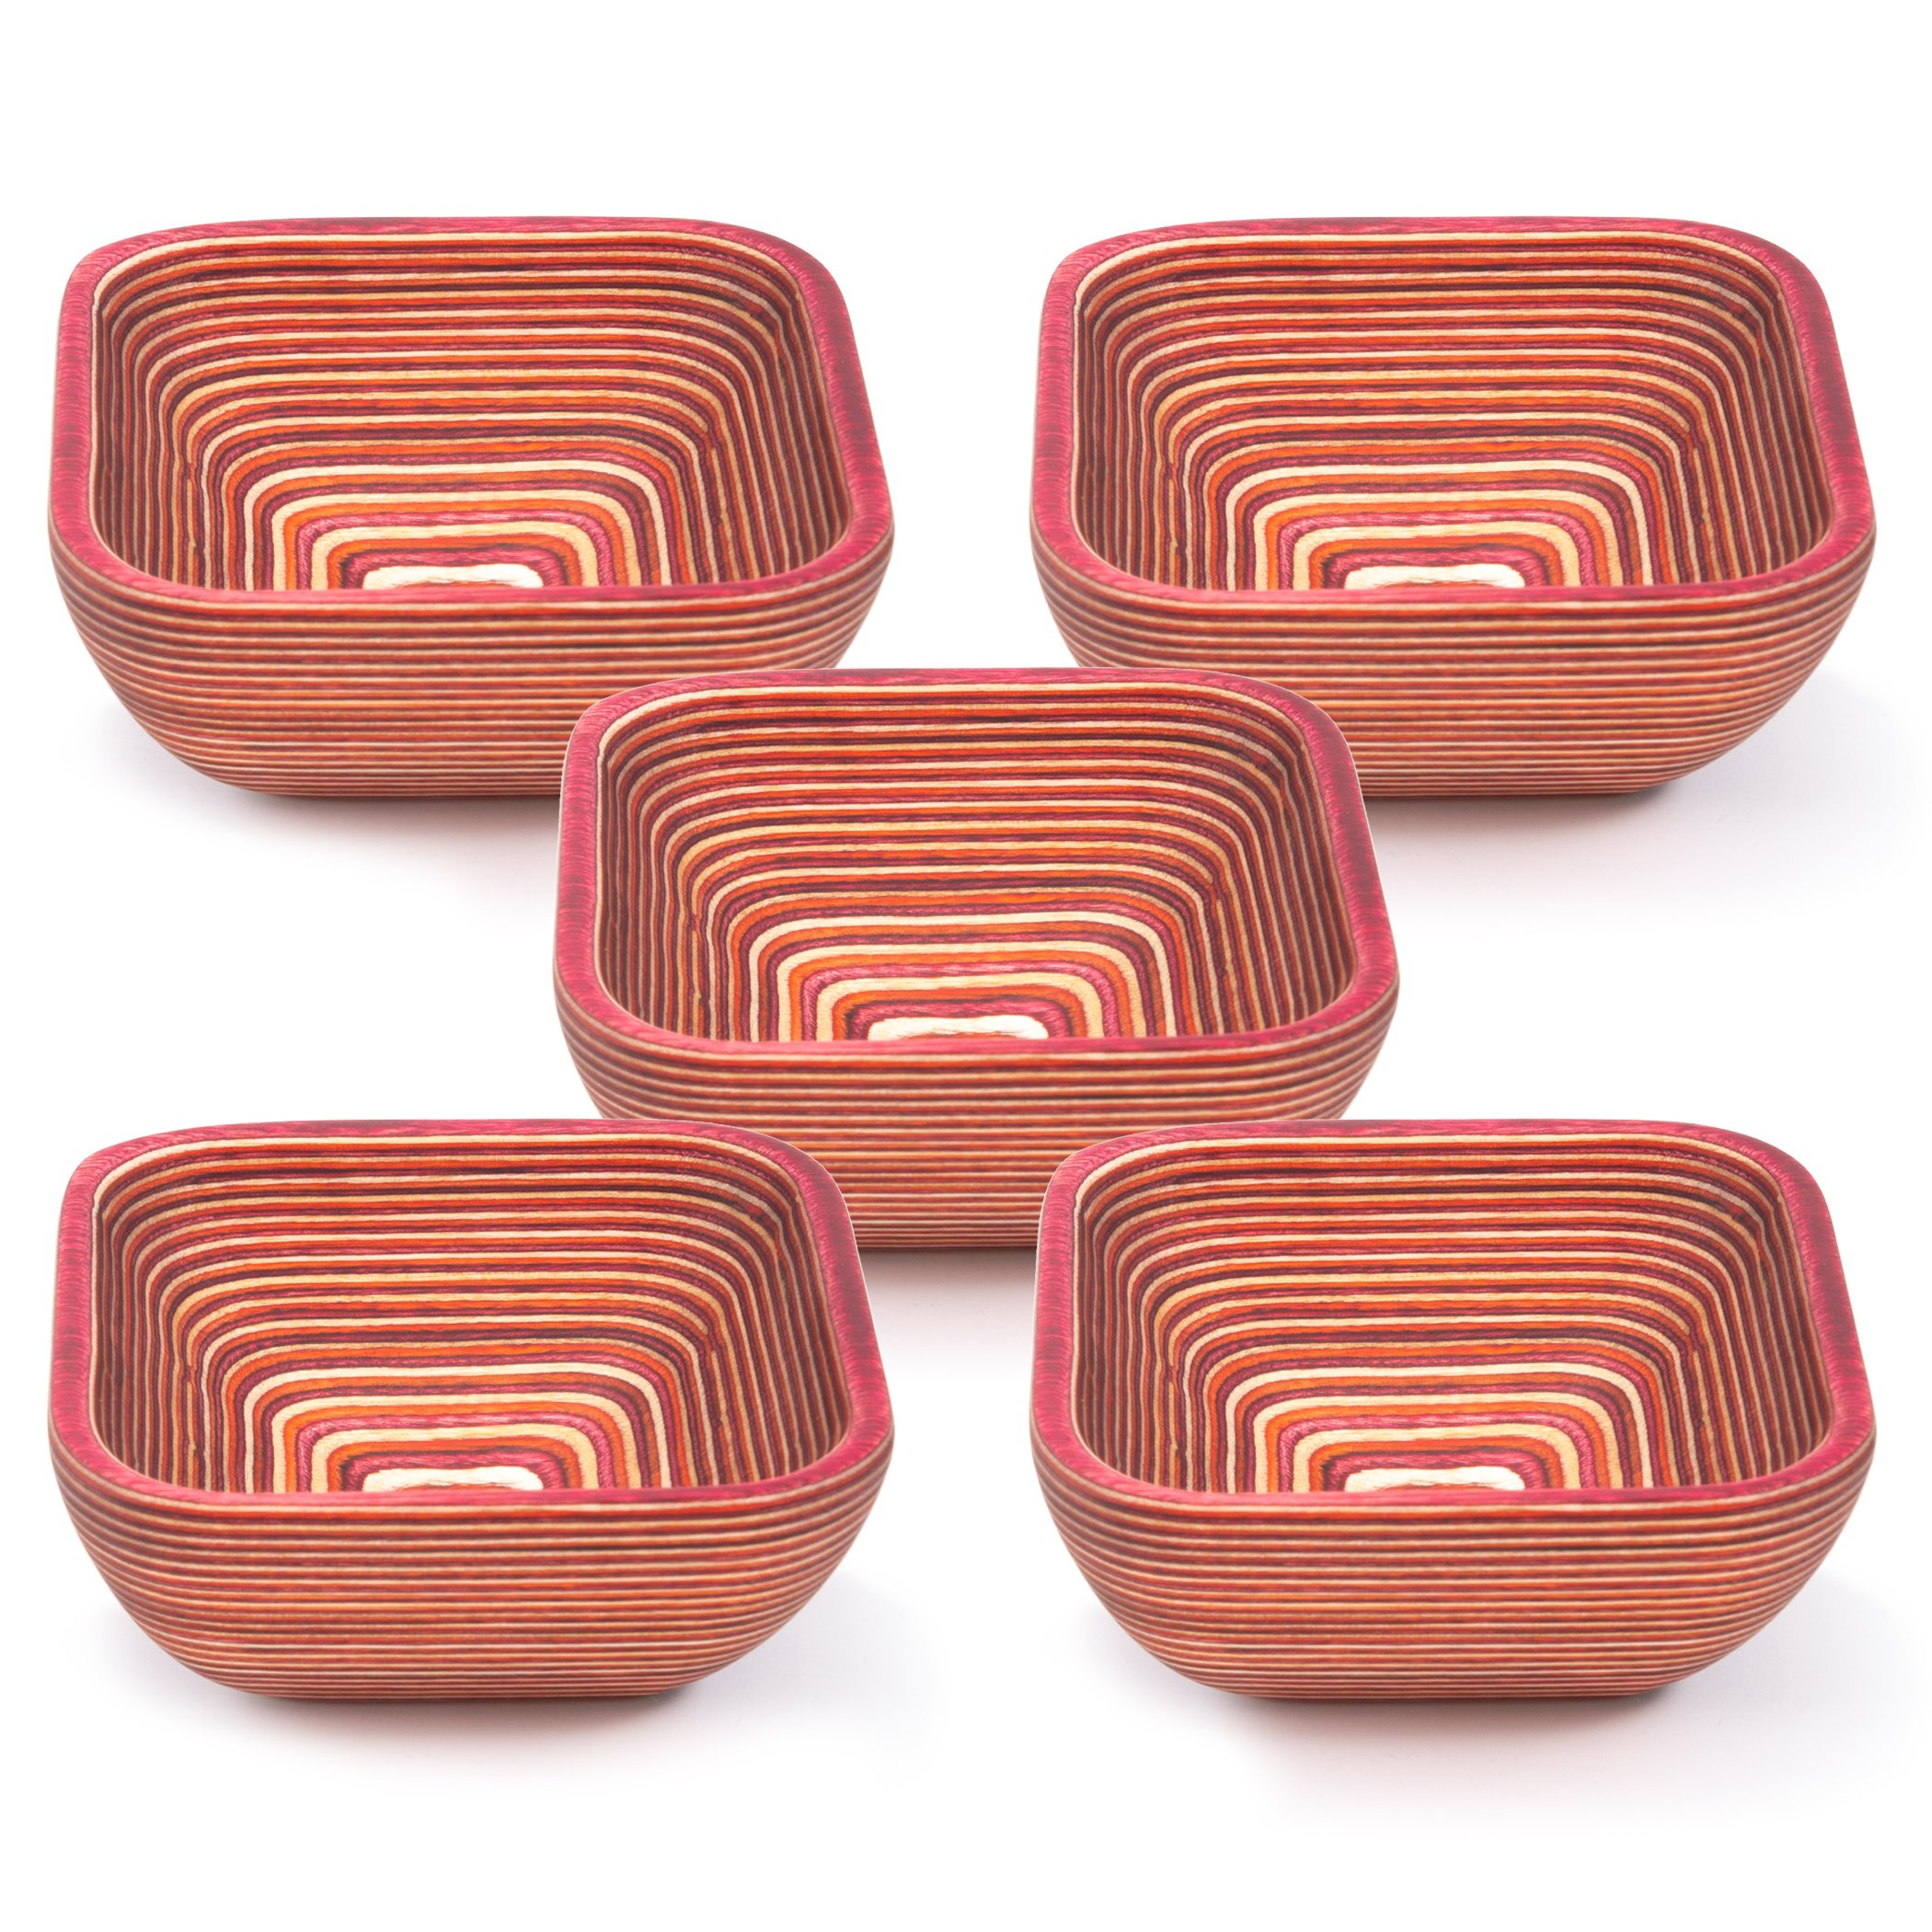 Exotic PakkaWood Condiment Bowls Set - 5 Stacking Square Bowls for Condiments, Snacks, and More by Crate Collective (Sunrise)